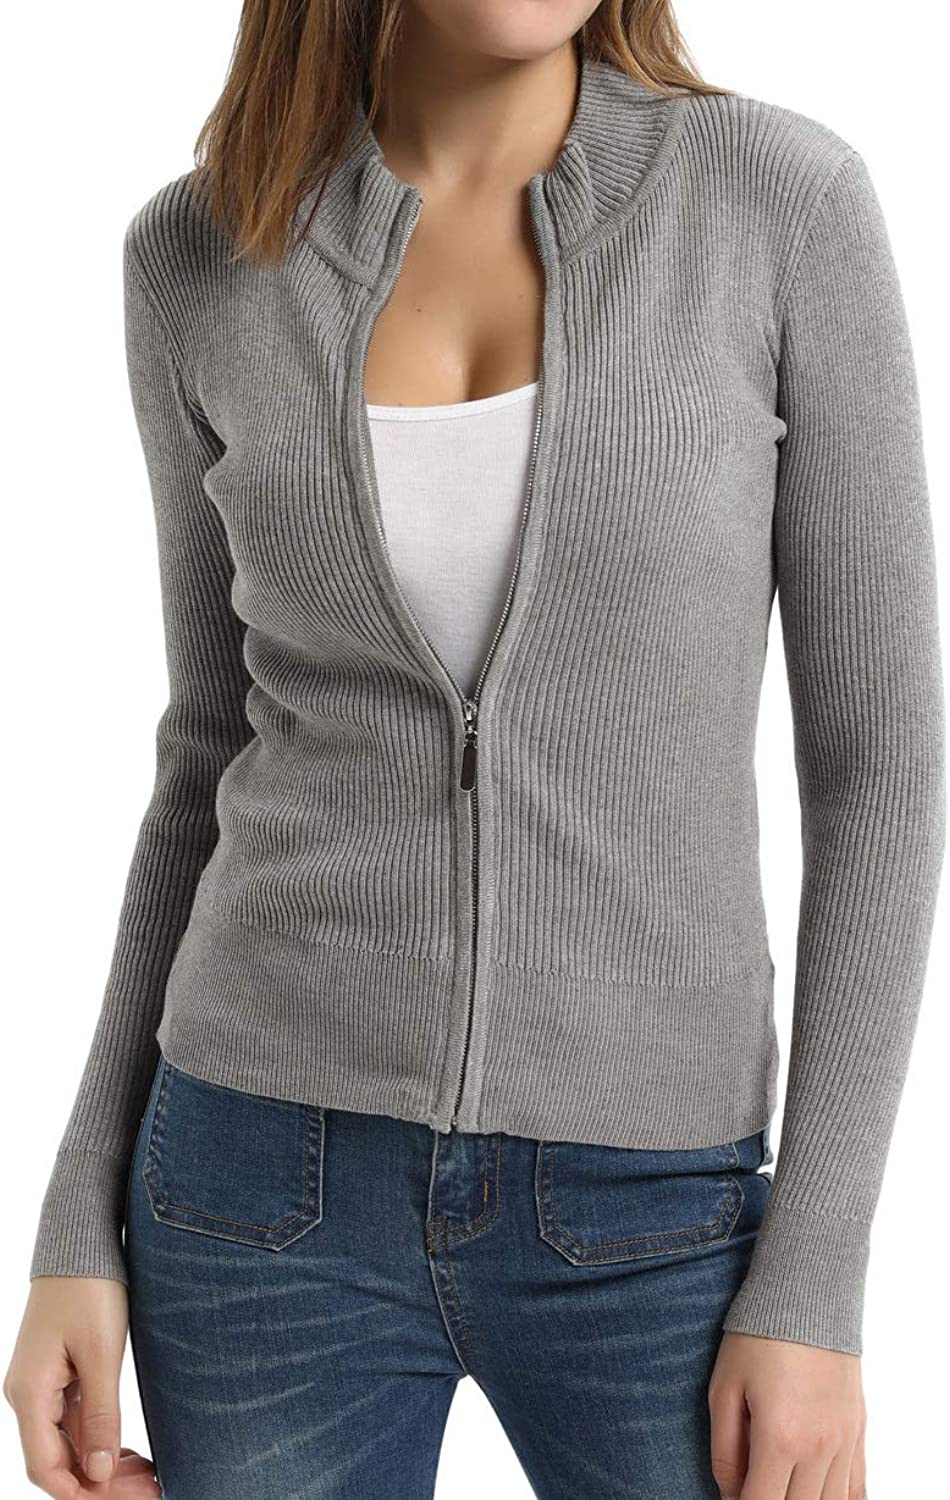 CURLBIUTY Women's Collar Casual Zip Cardigan Jacket Grey22 M